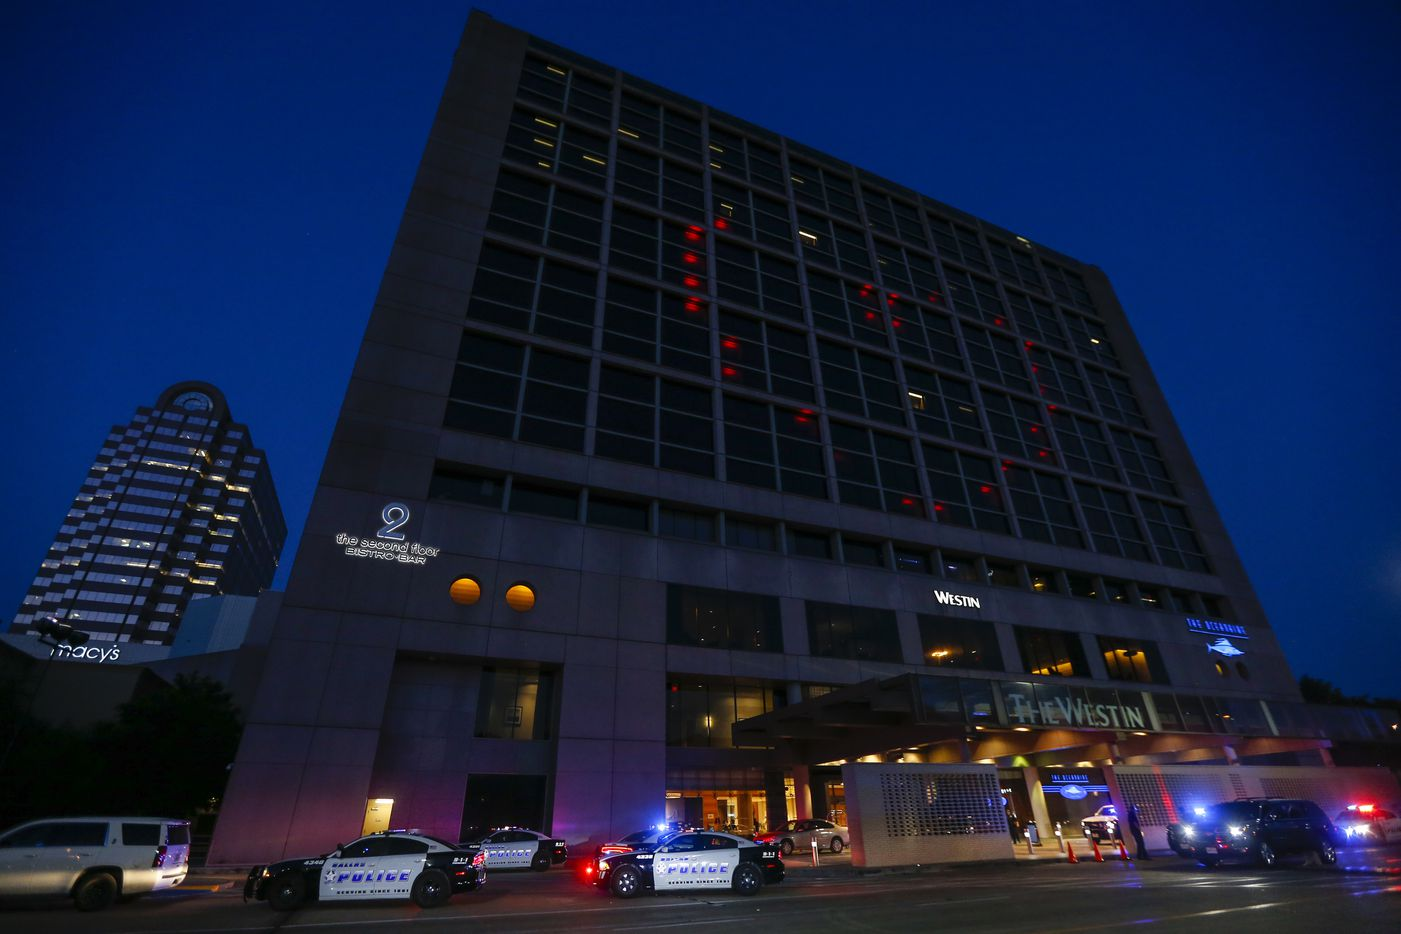 A red heart is highlighted by windows of the Westin Hotel as police work below at the Galleria Mall, where a shooting was reported Tuesday, June 16, 2020 in Dallas.